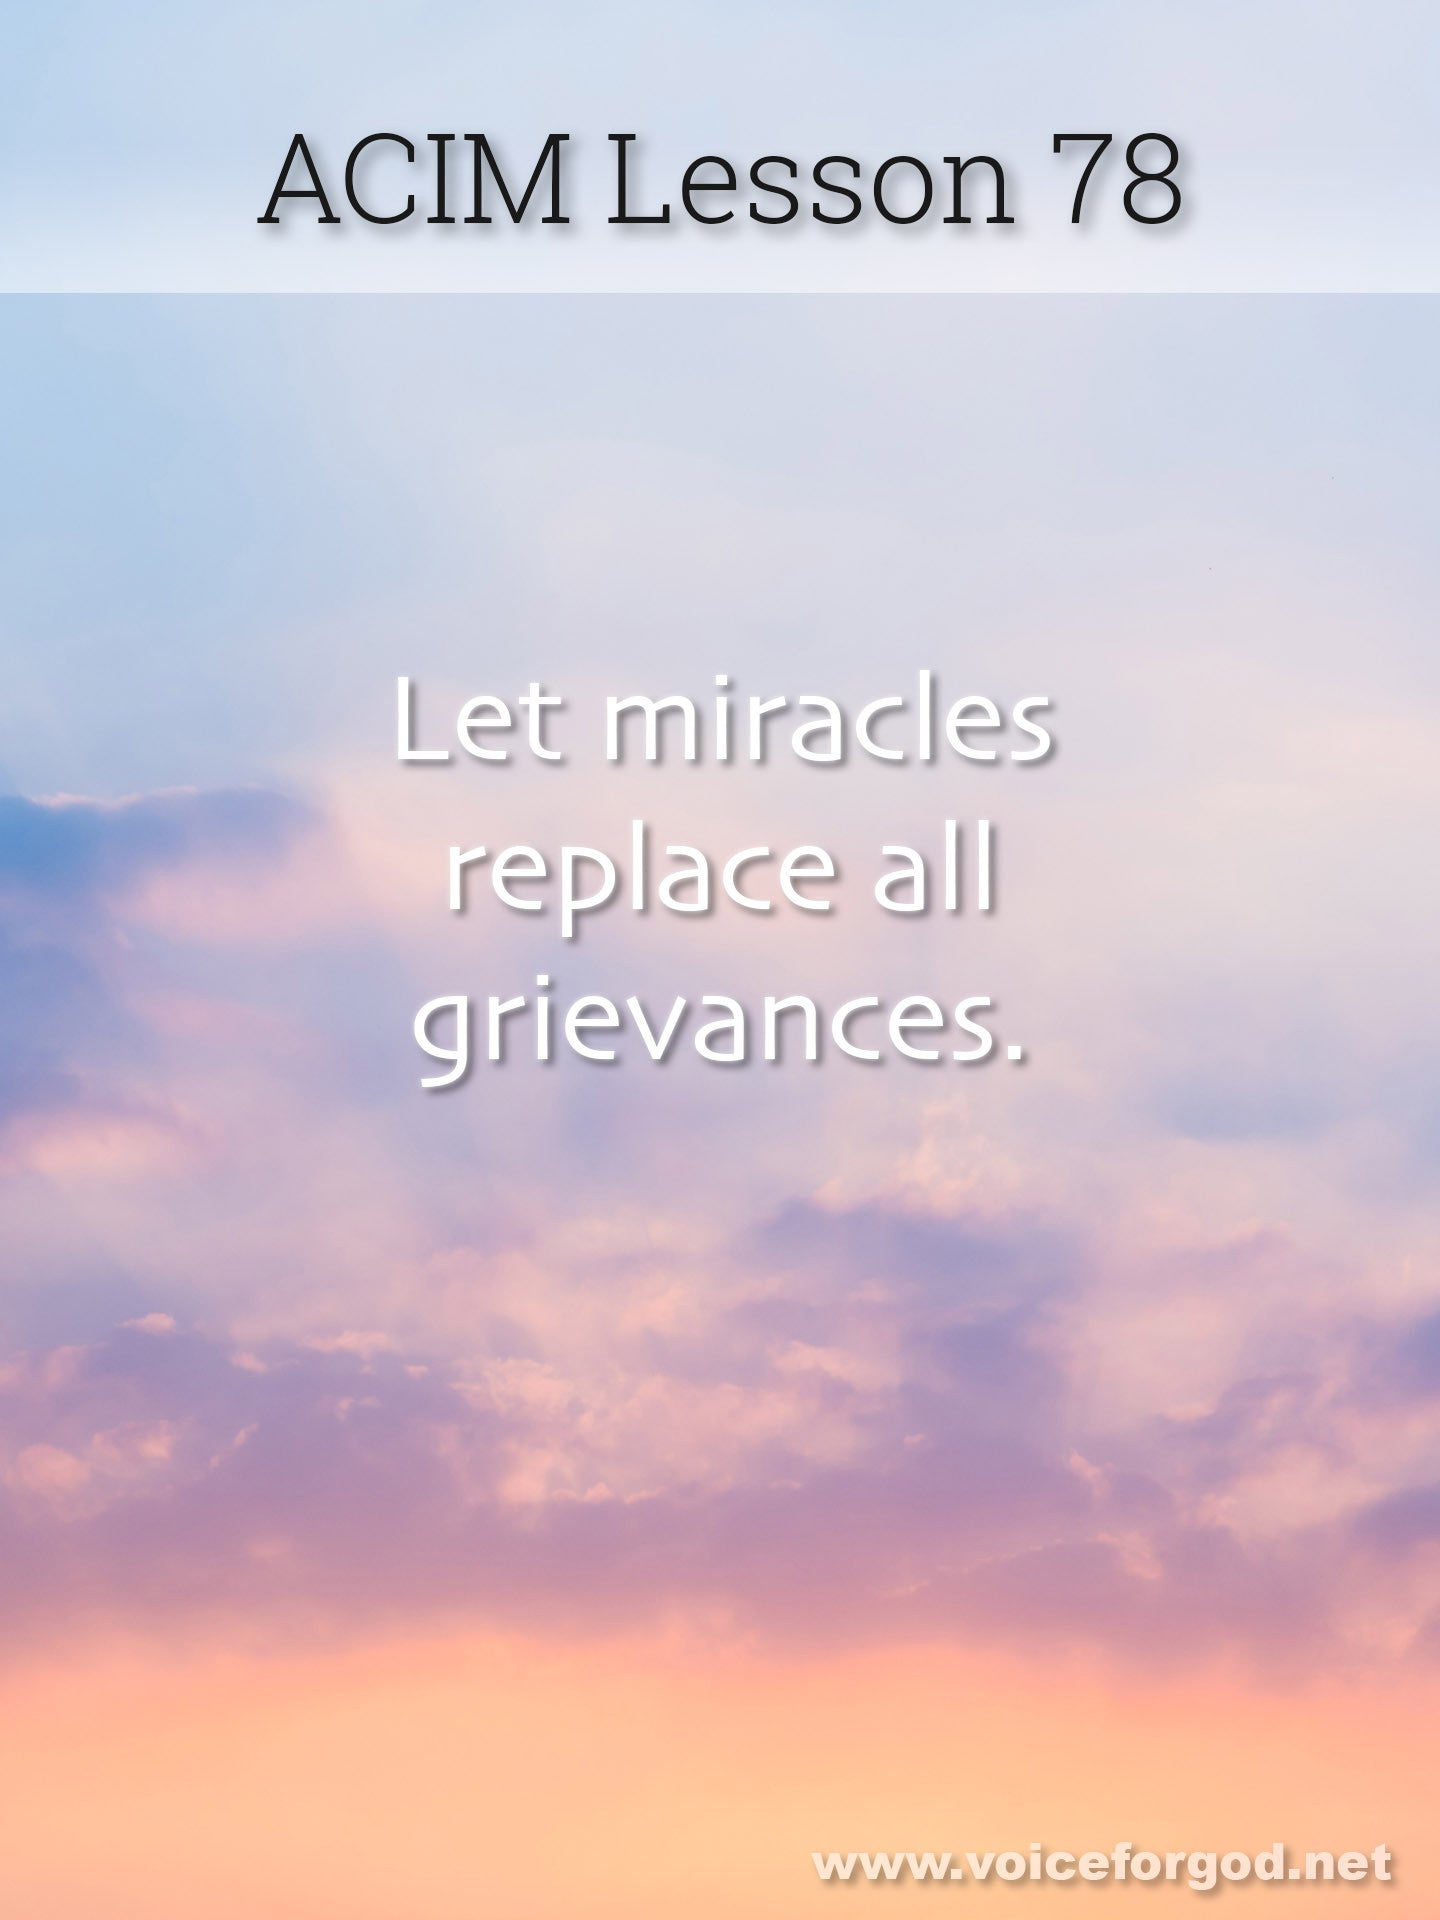 ACIM Lesson 78 - A Course in Miracles Workbook Lesson 78